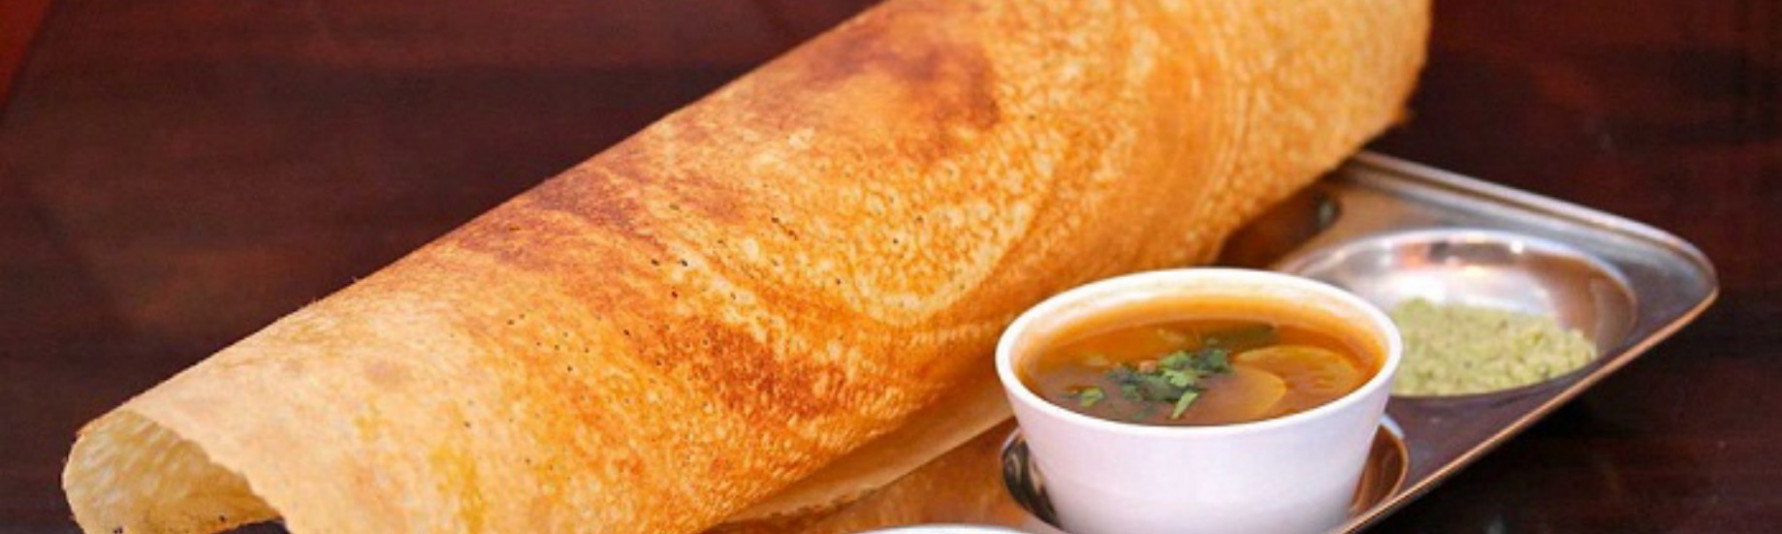 South Indian Food & Cuisine - south indian food recipes non vegetarian